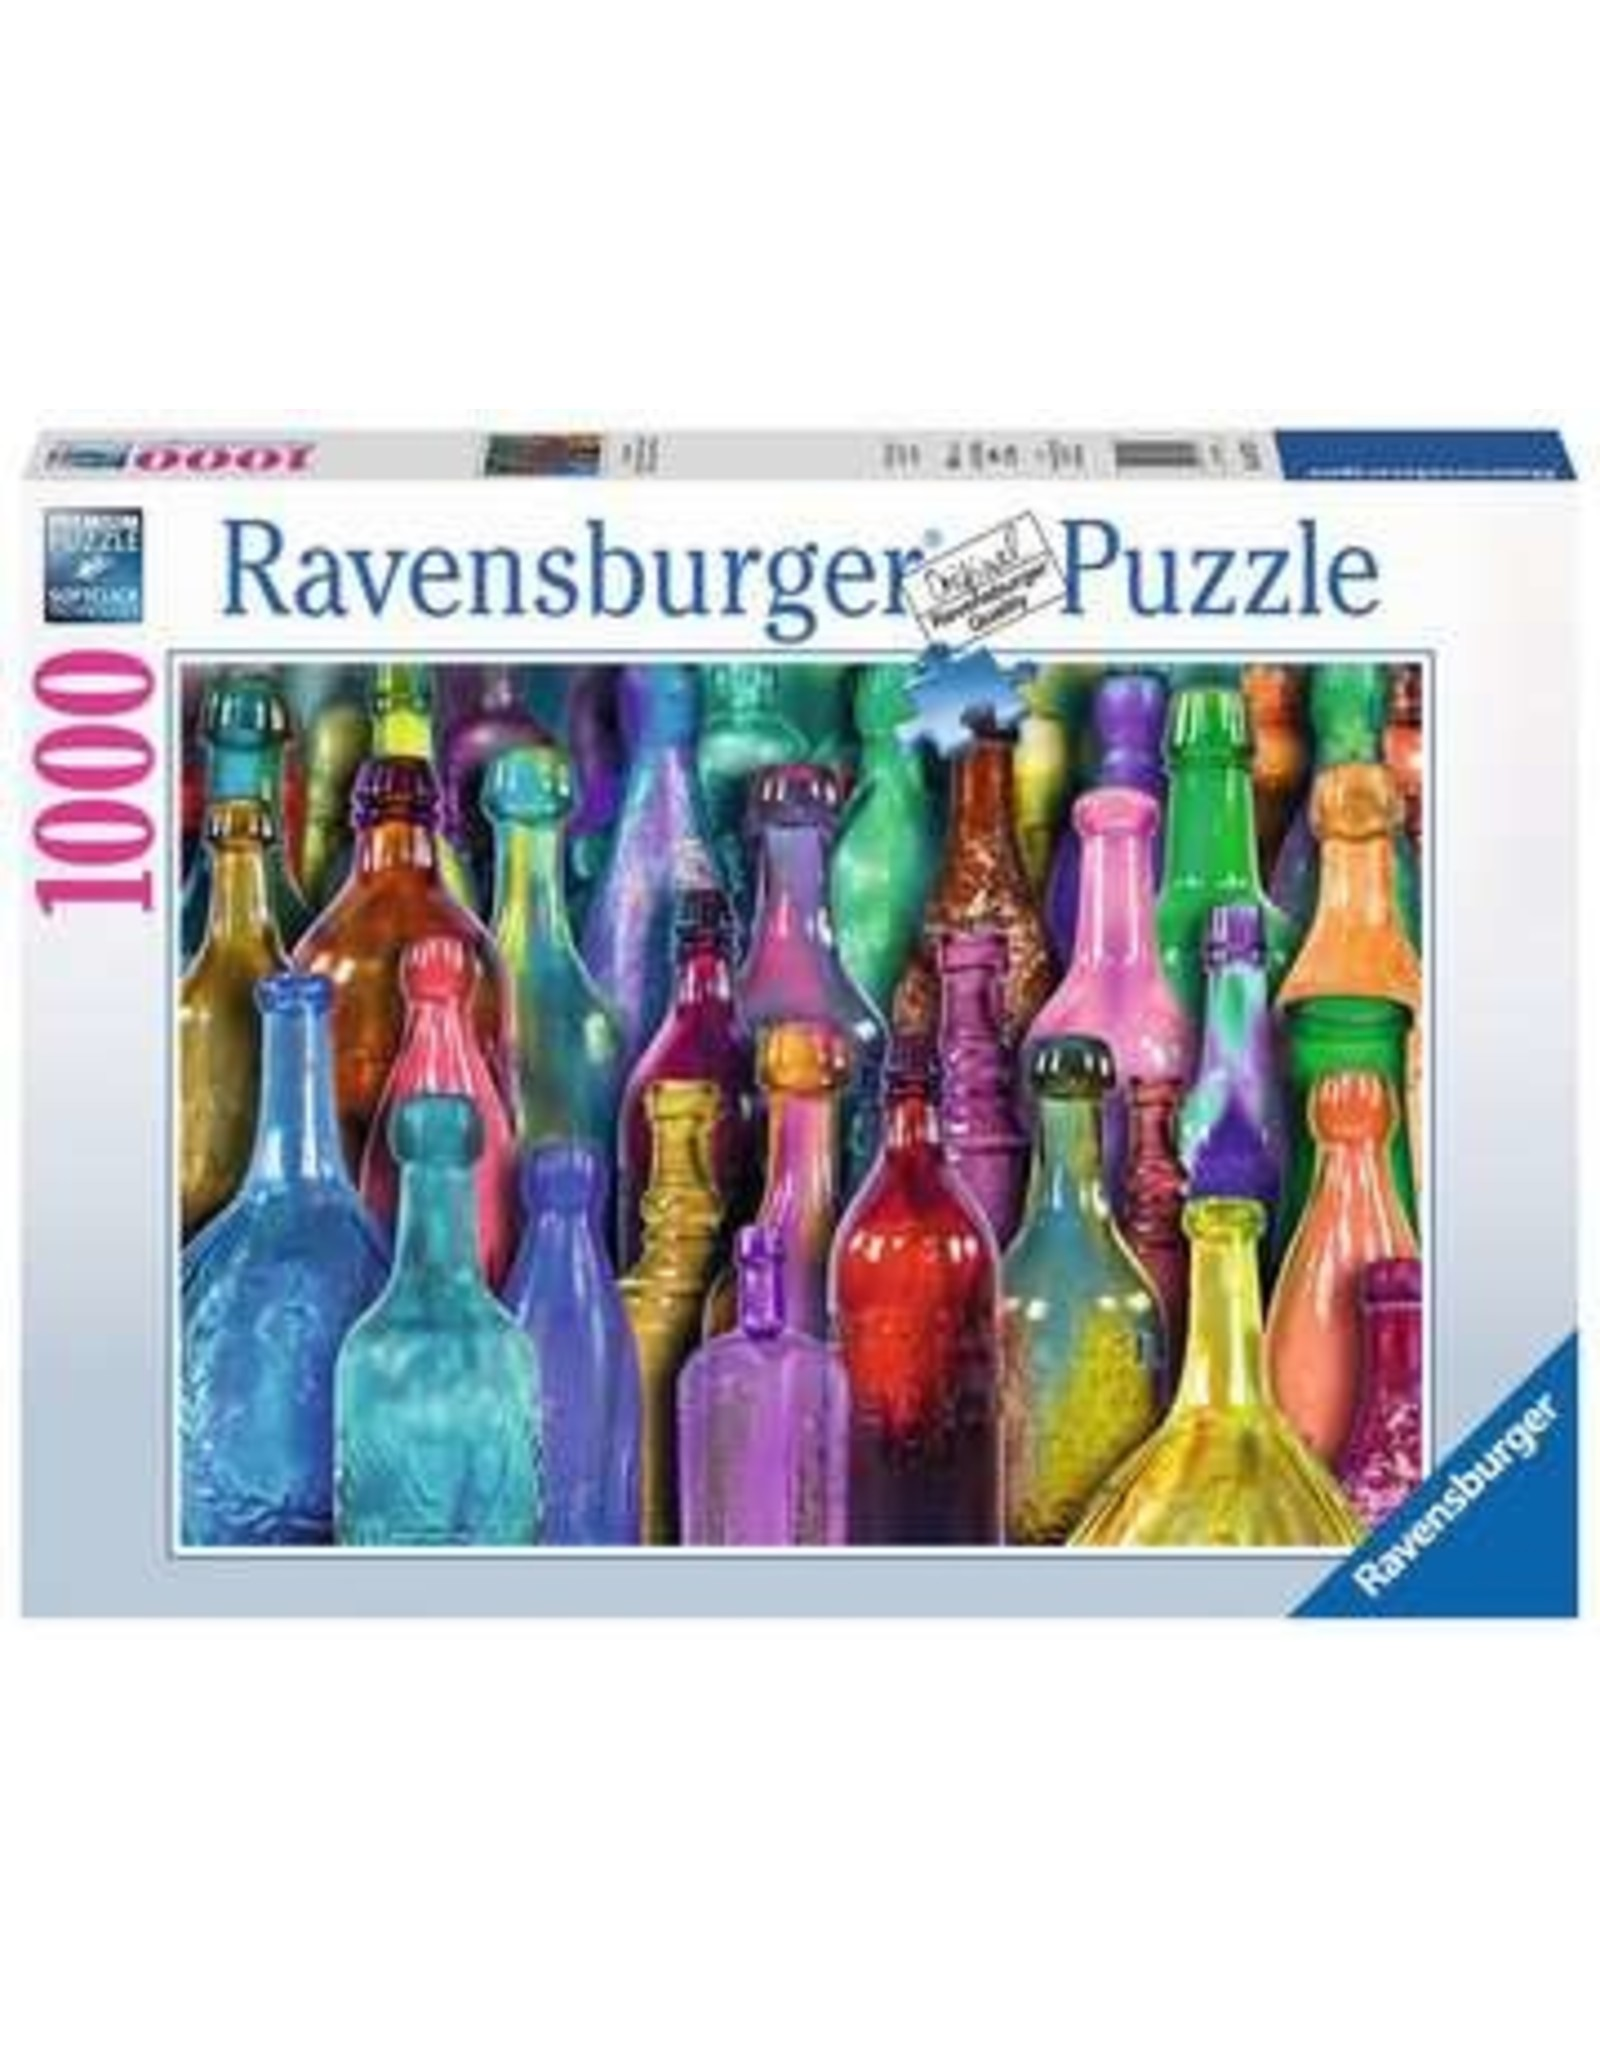 Ravensburger Colorful Bottles